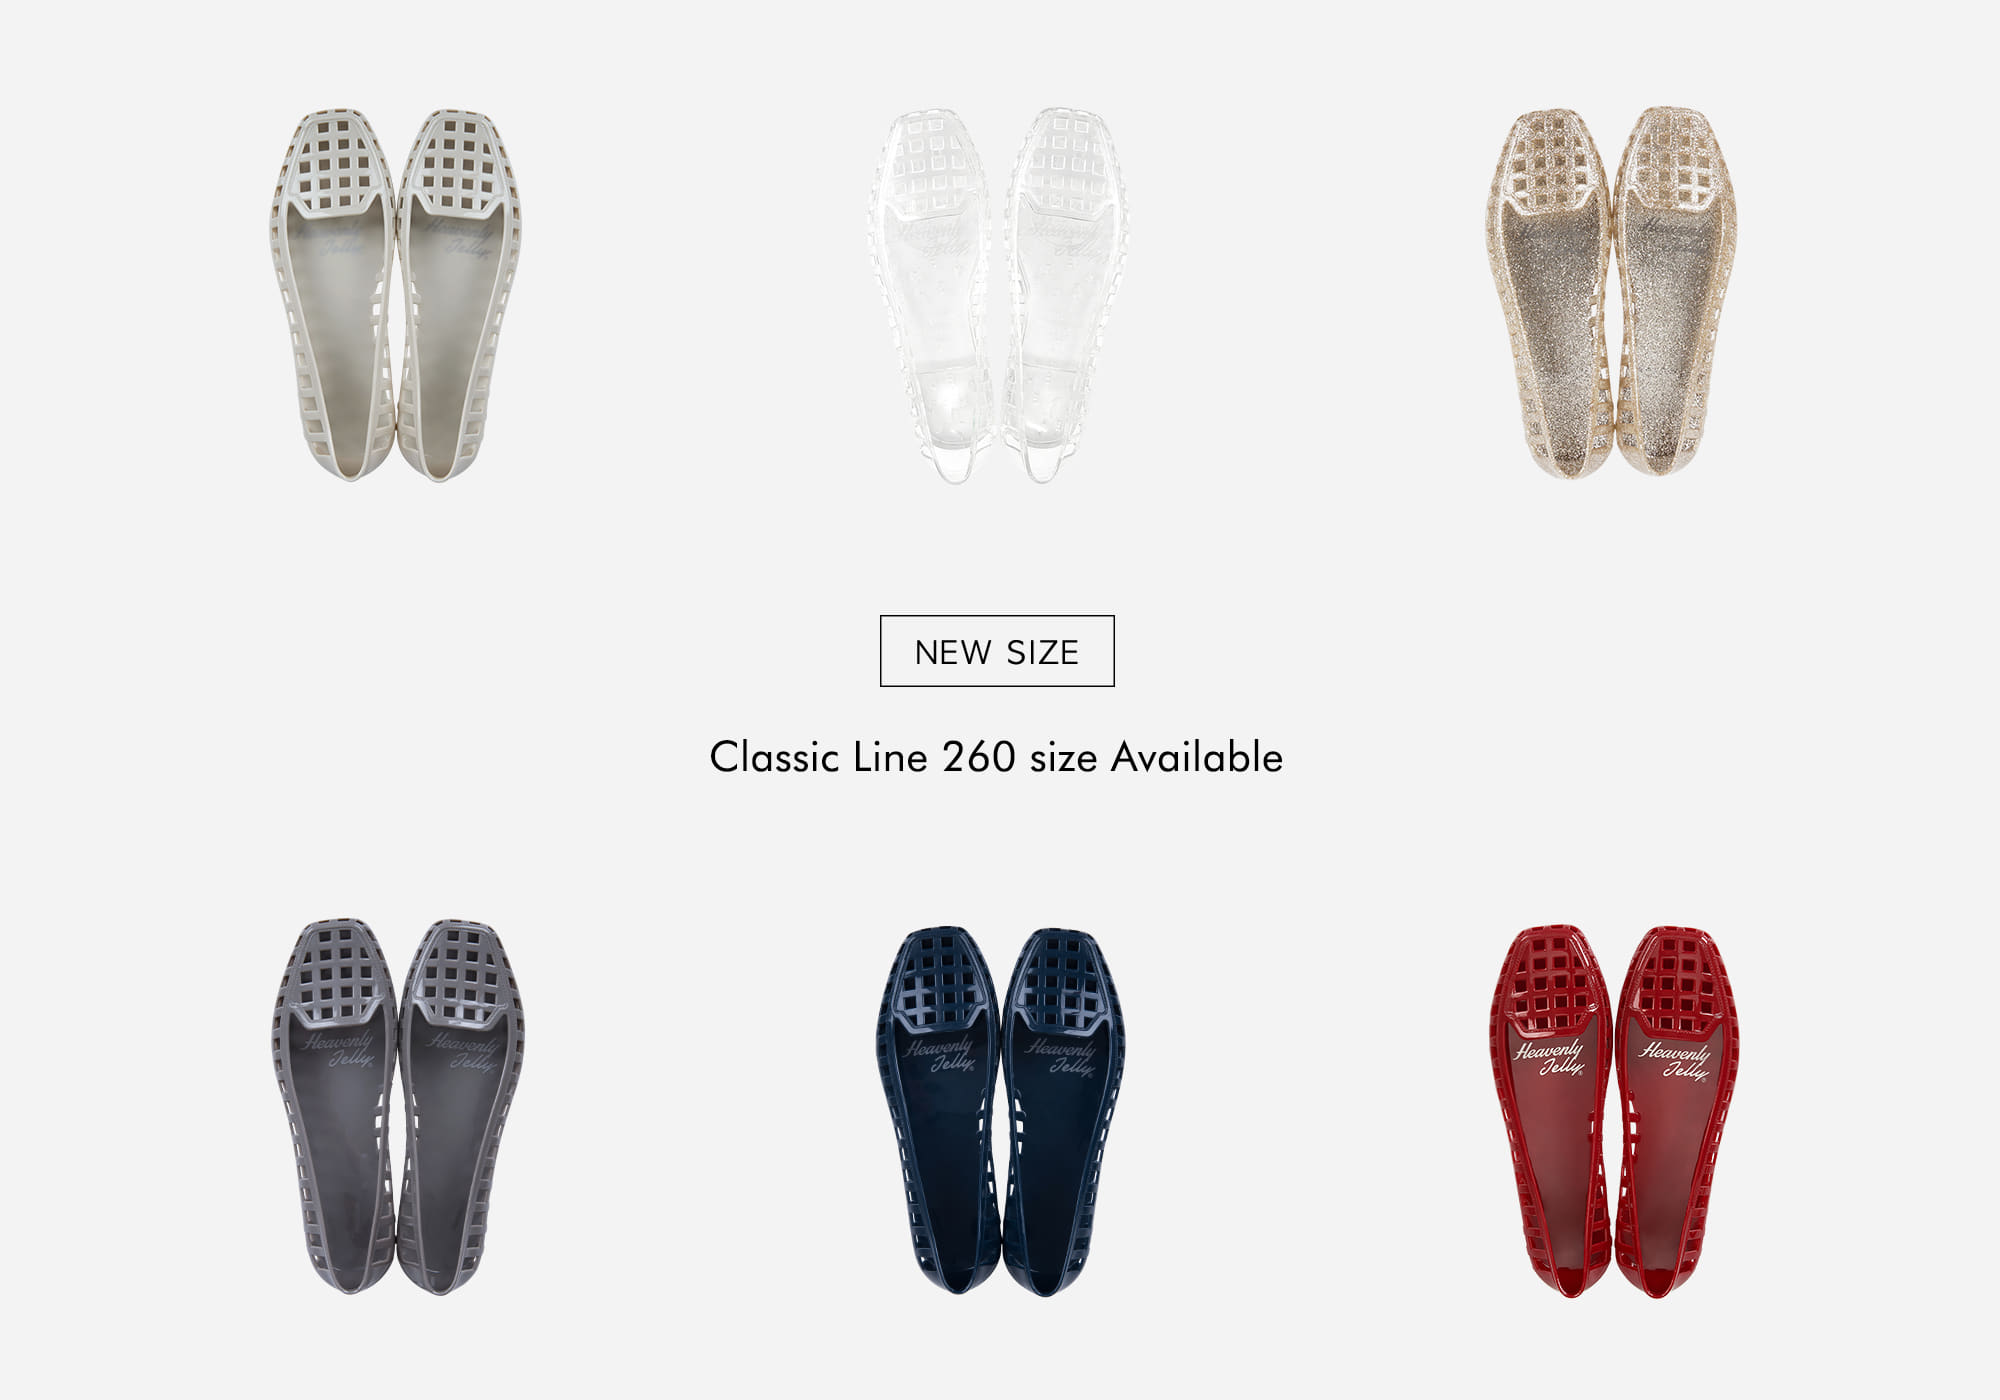 Classic Line 260 size Available!